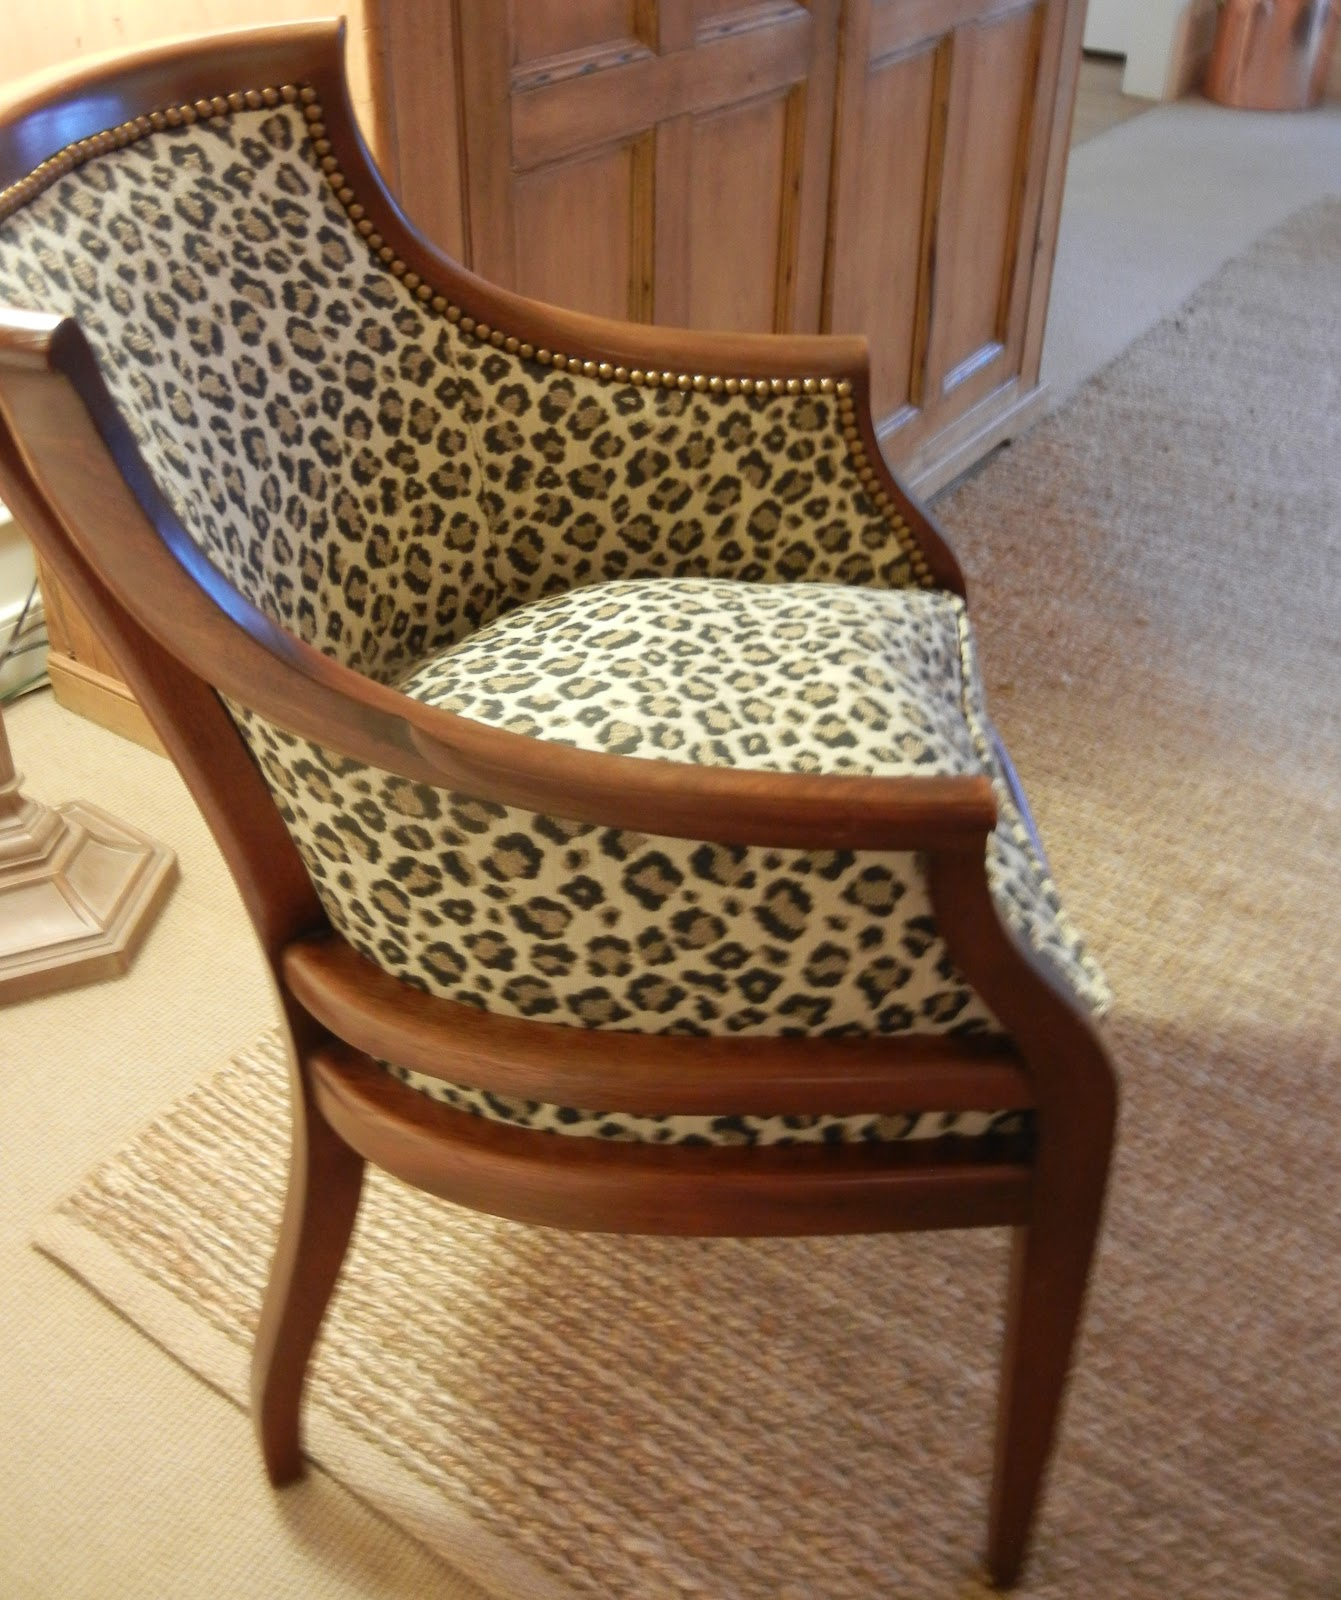 Cheetah Chair A Curious Gardener The Leopard Nana Chair